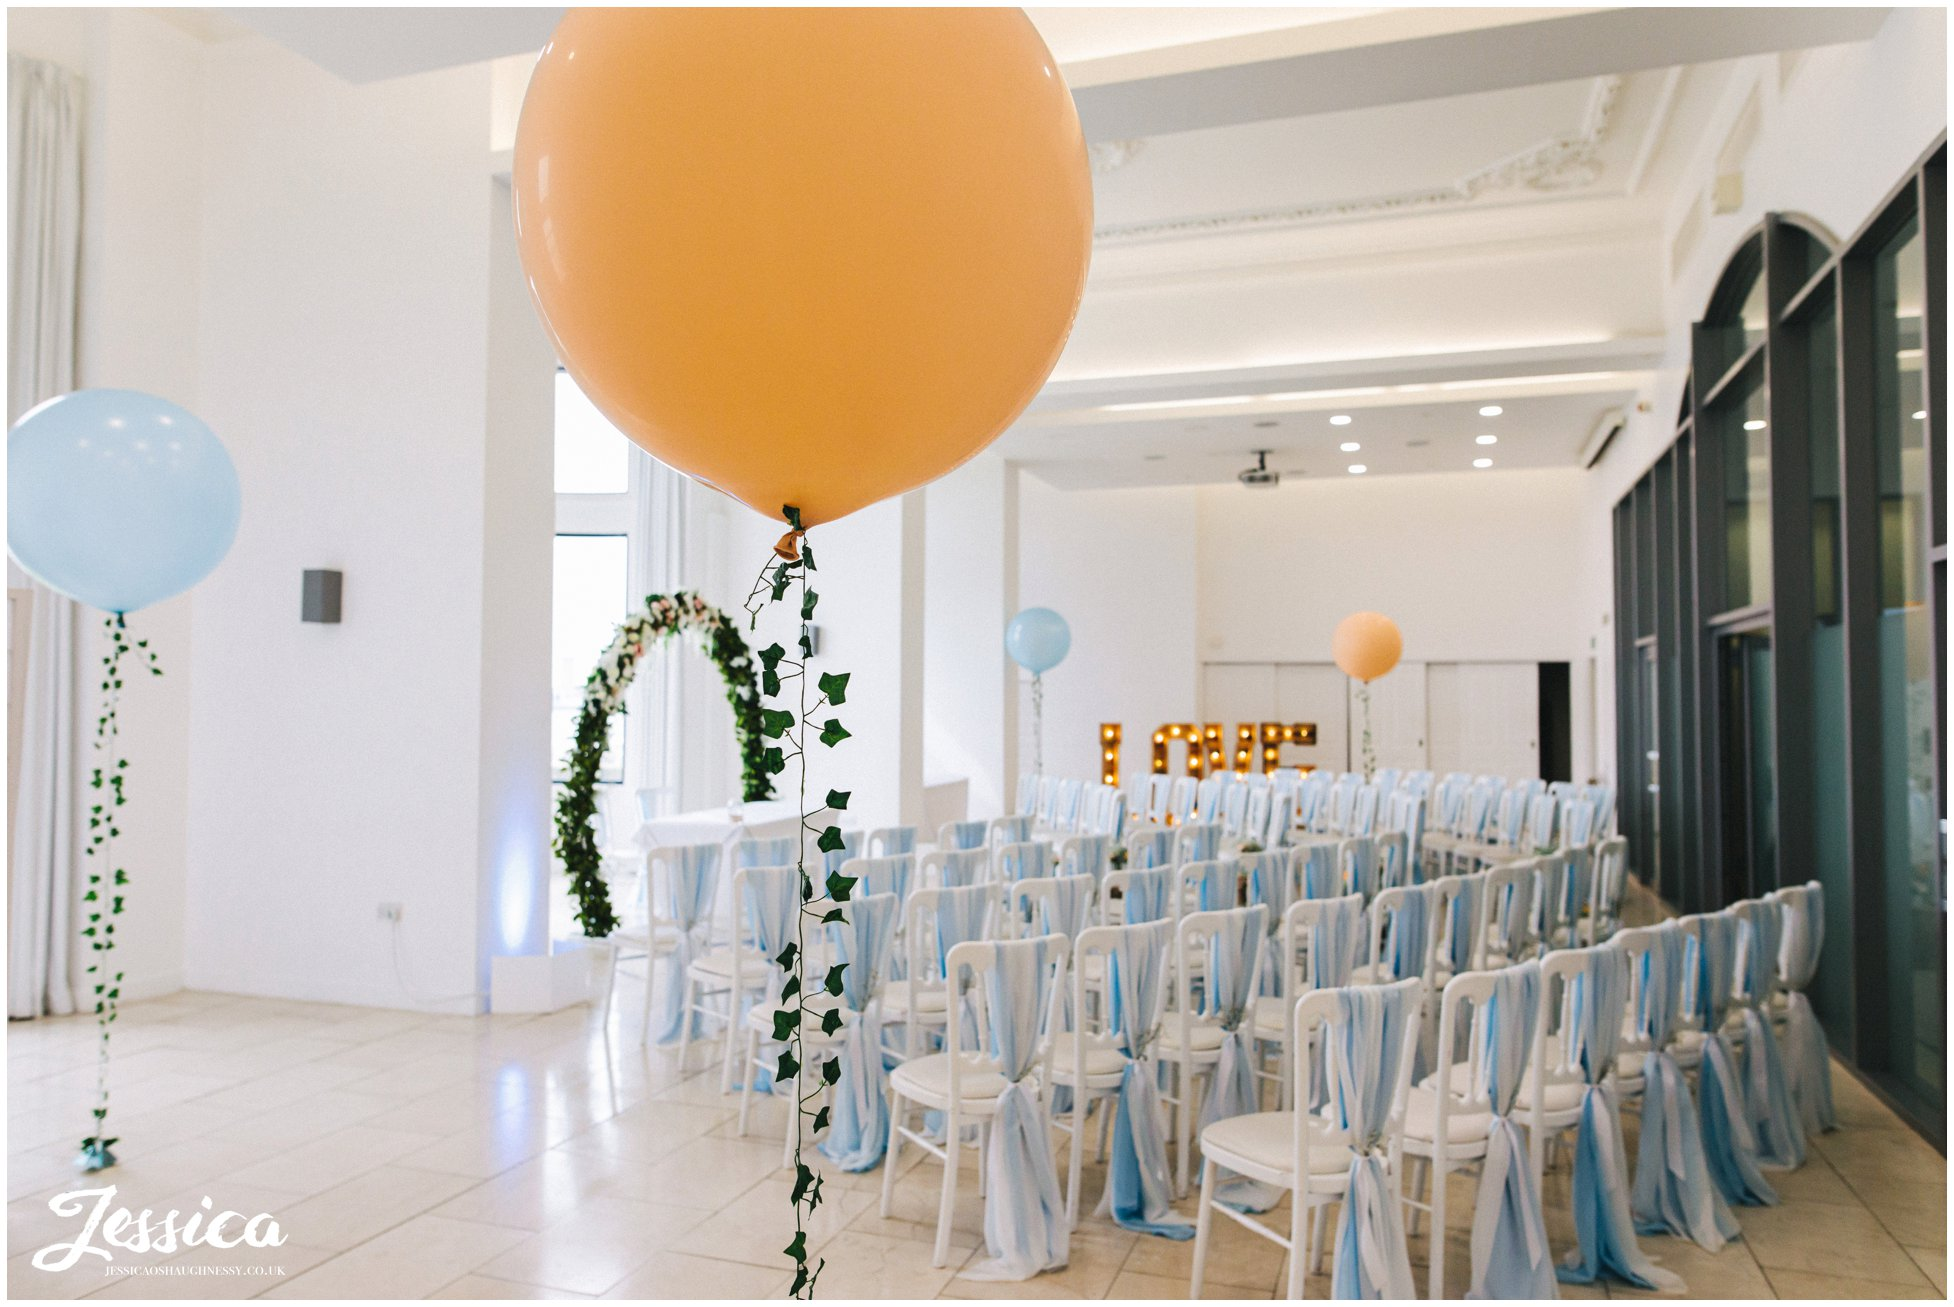 giant balloons for the wedding at the liver building